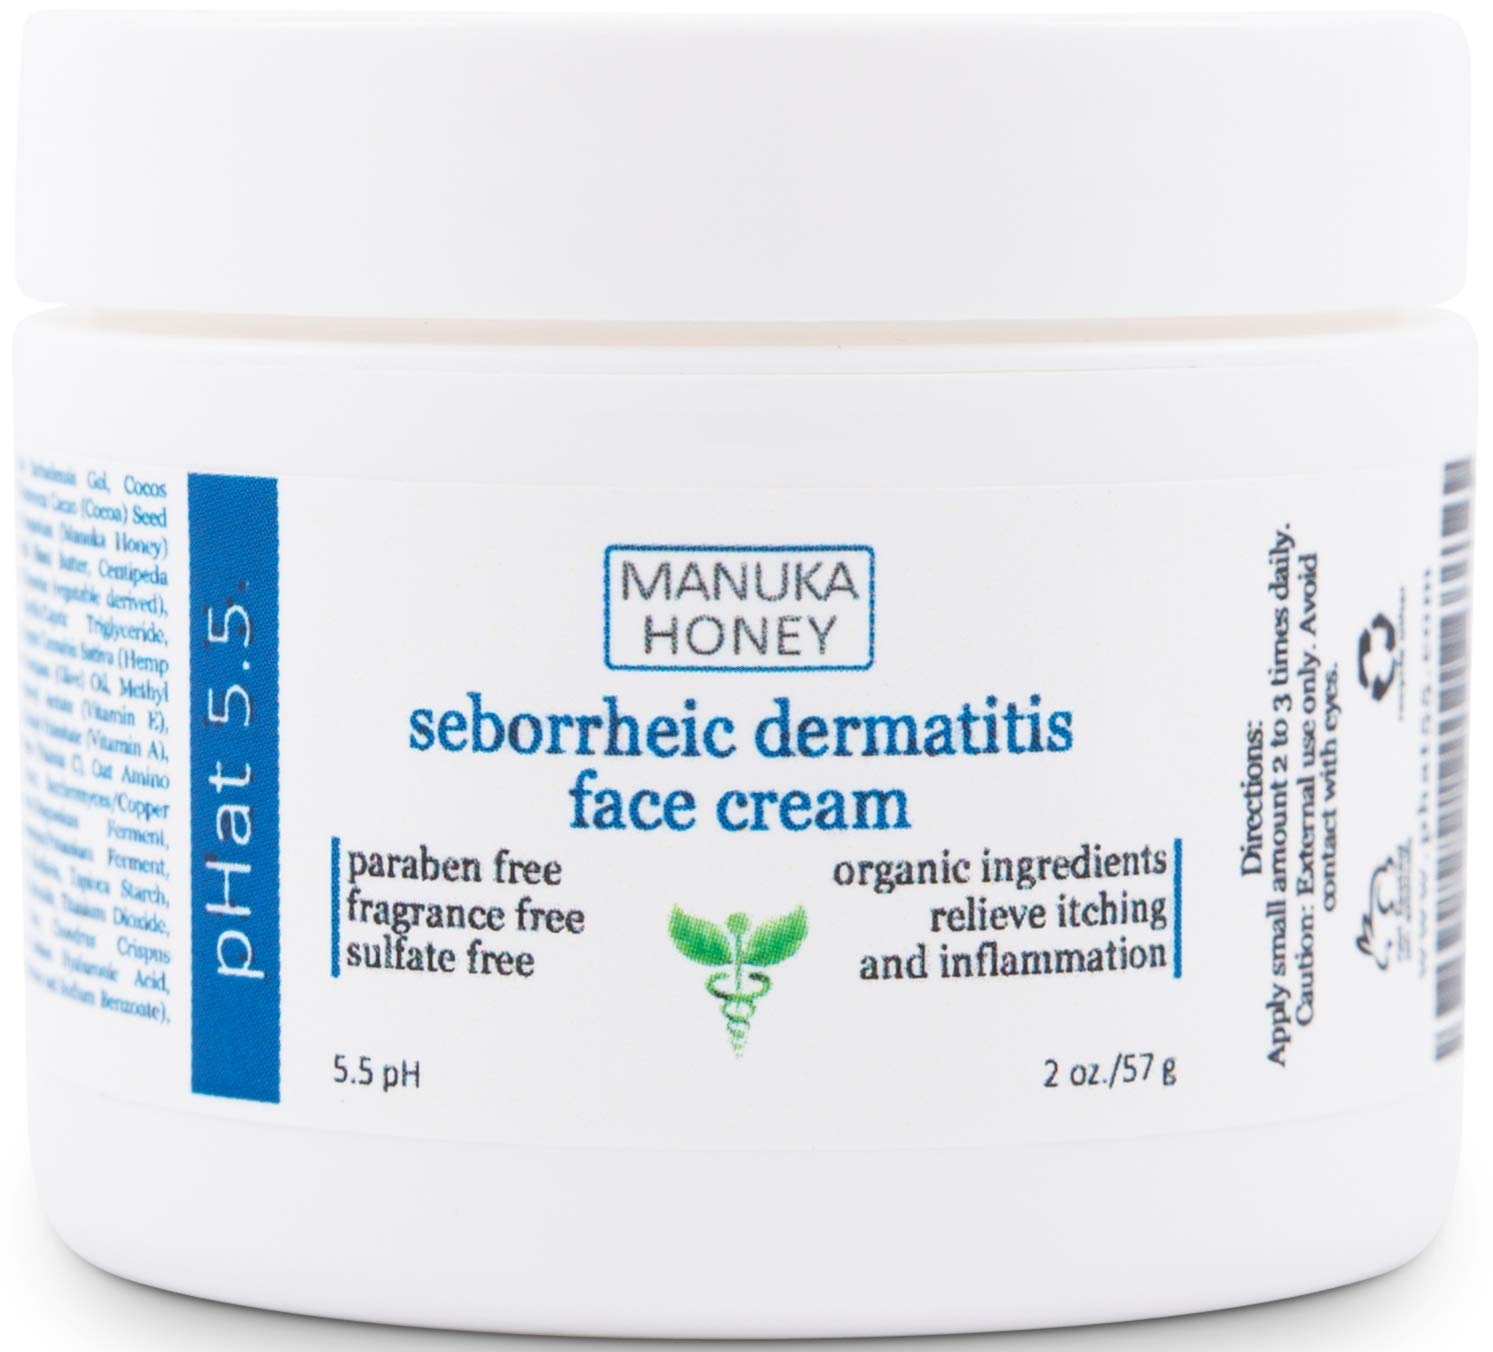 Seborrheic Dermatitis Cream with Manuka Honey, Coconut Oil and Aloe Vera - Moisturizing Face and Body Anti Itch Cream and Skin Treatment for Sensitive Skin - Natural & Organic Cream (2 oz)